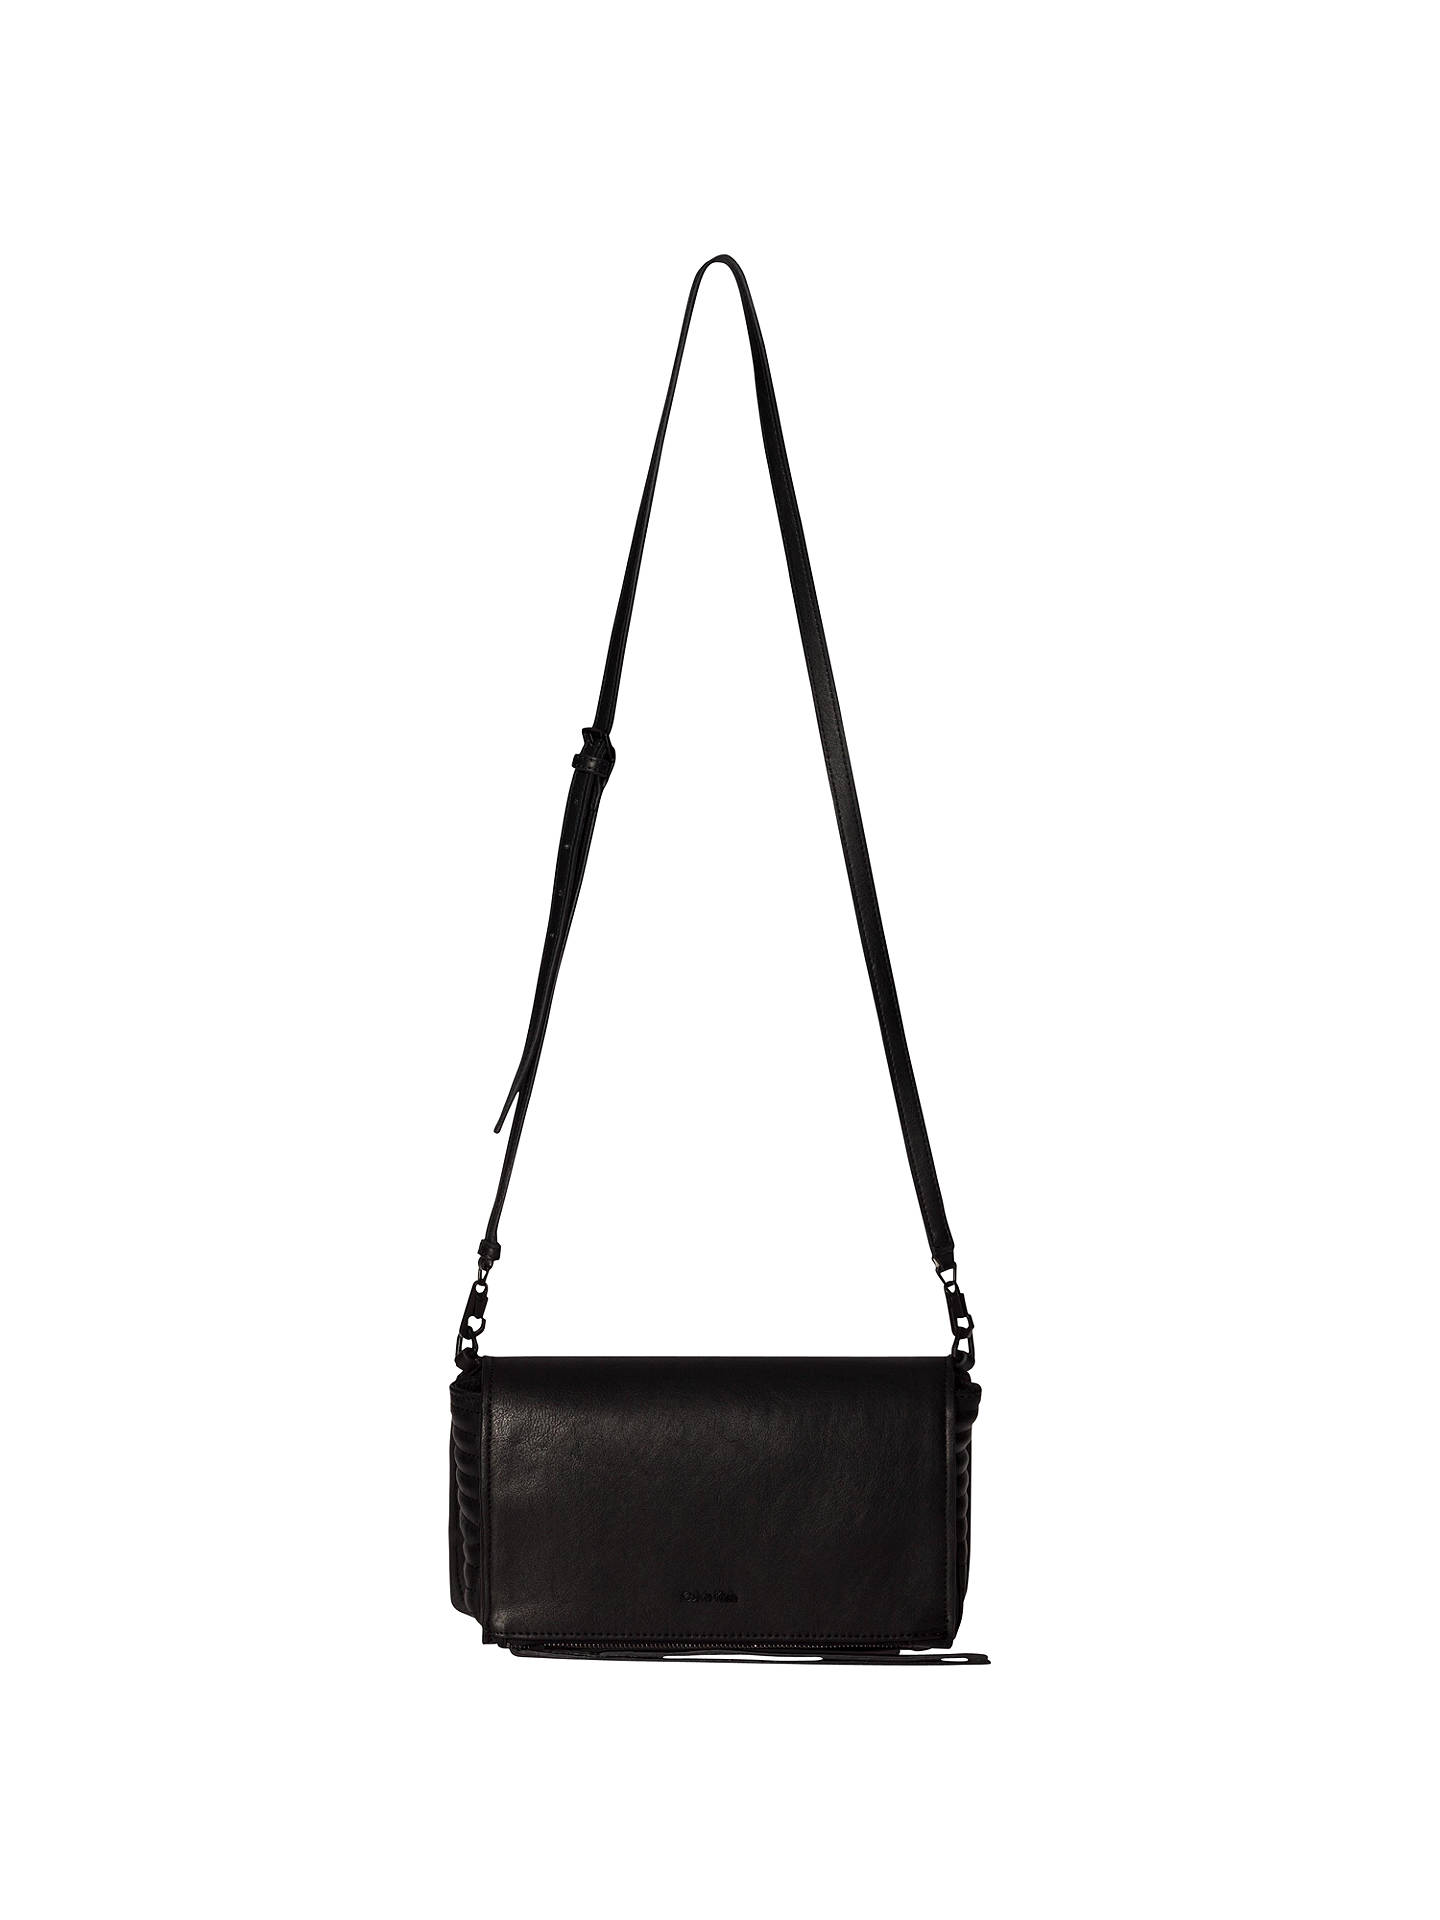 2fd5cd7511 Buy Calvin Klein Esther Small Leather Cross Body Bag, Black Online at  johnlewis.com